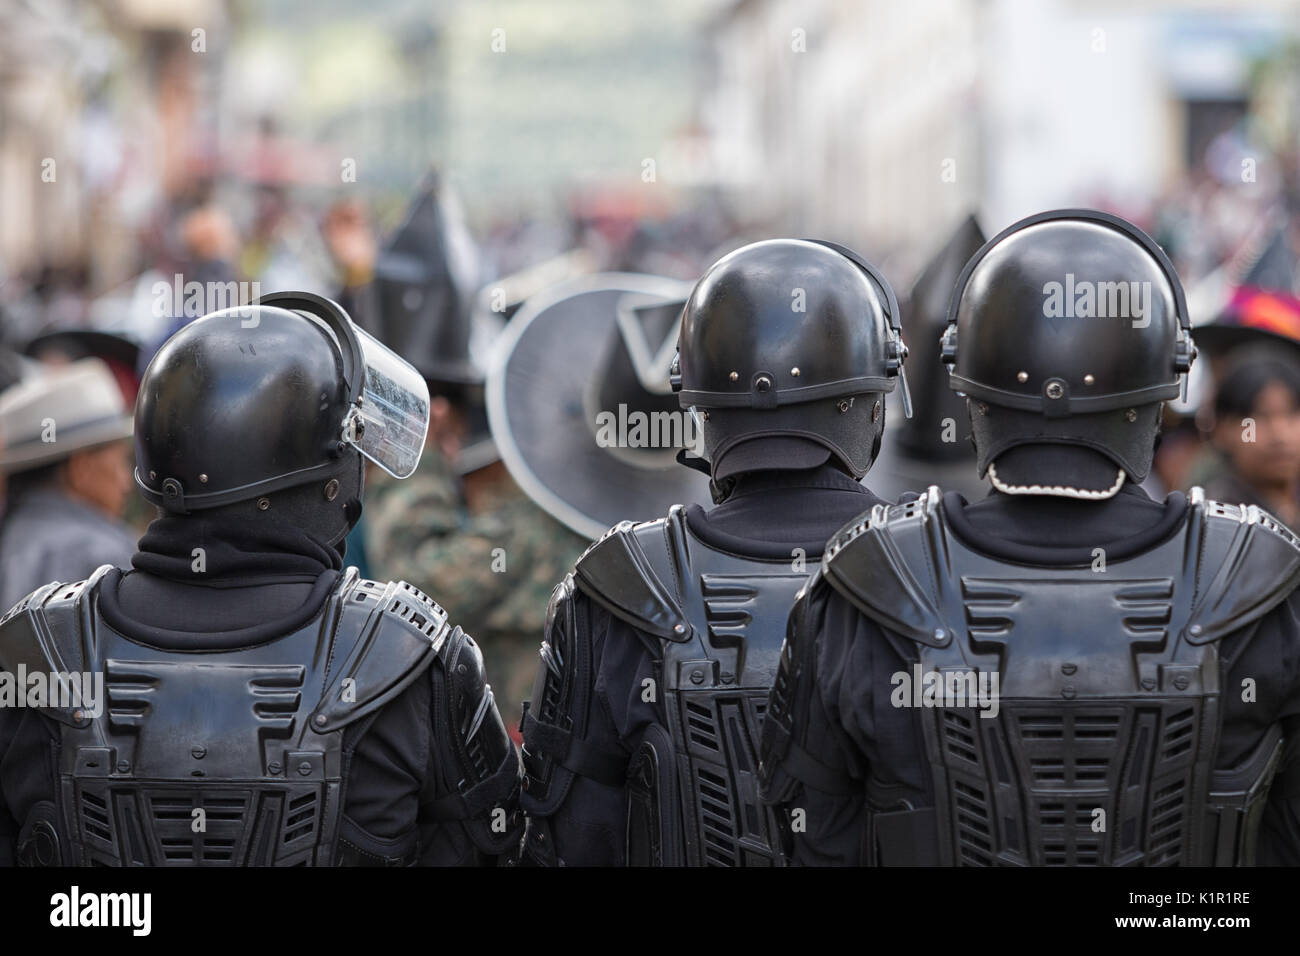 June 24, 2017 Cotacachi, Ecuador: police force on guard during Inti Raymi celebration which occasionally ends up with violence - Stock Image